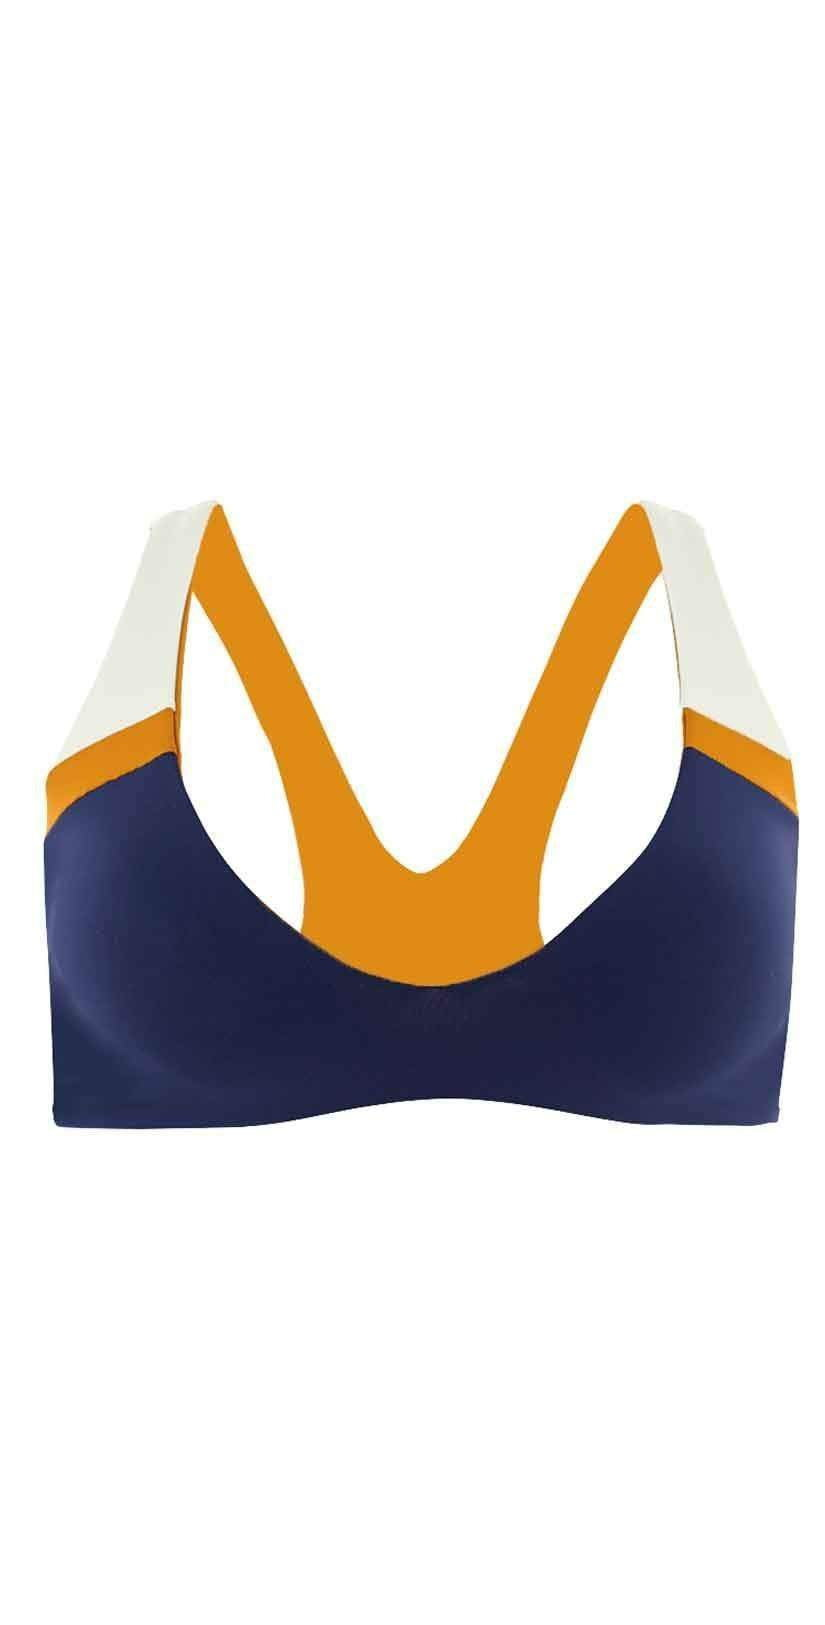 L Space Color Block Rylie Top In Midnight Blue CBRBT18-MDB: